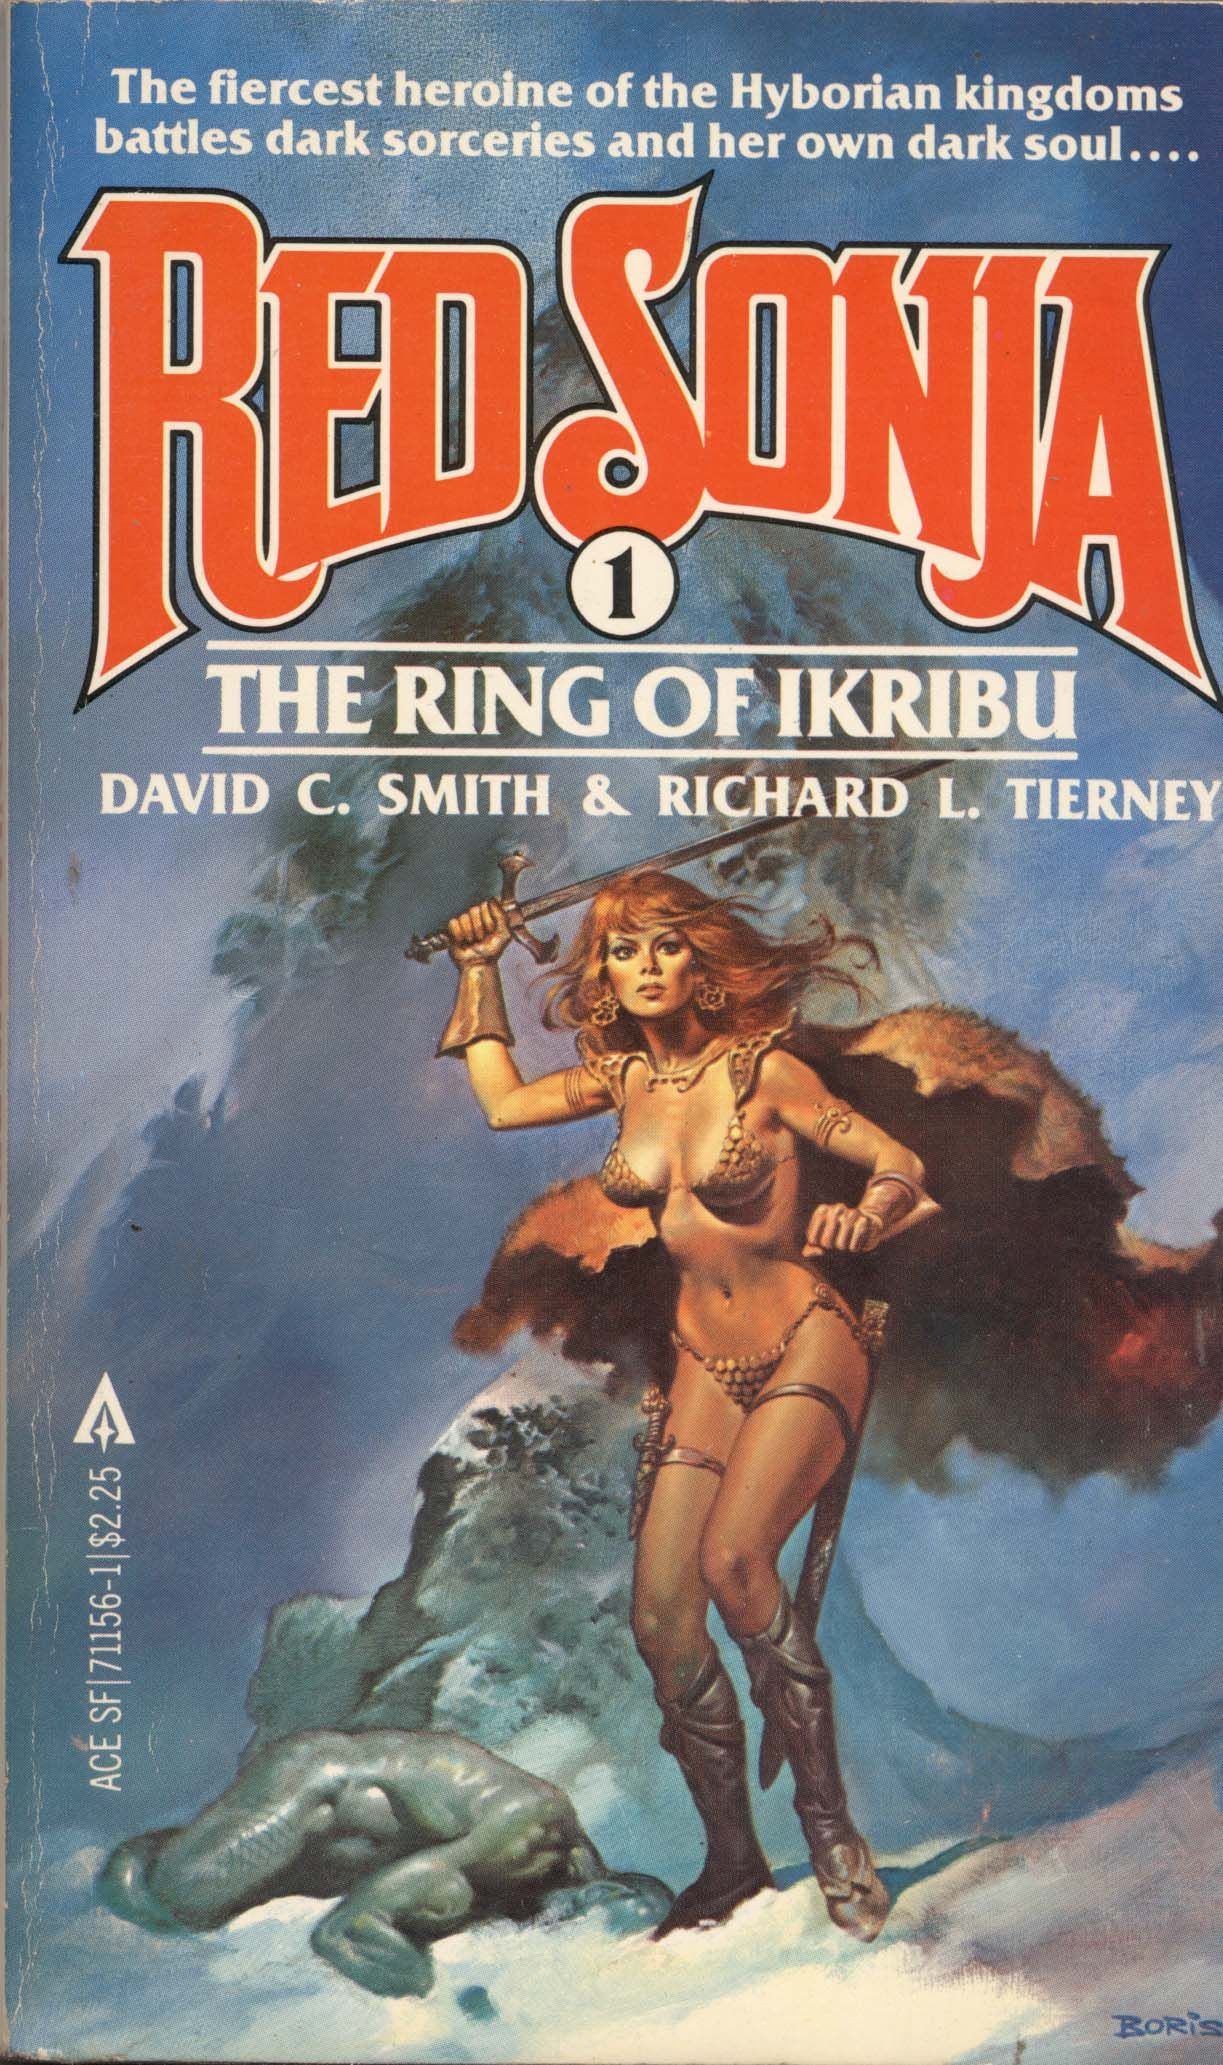 Book Cover Fantasy Zone : Red sonja the ring of ikribu pulp cover art